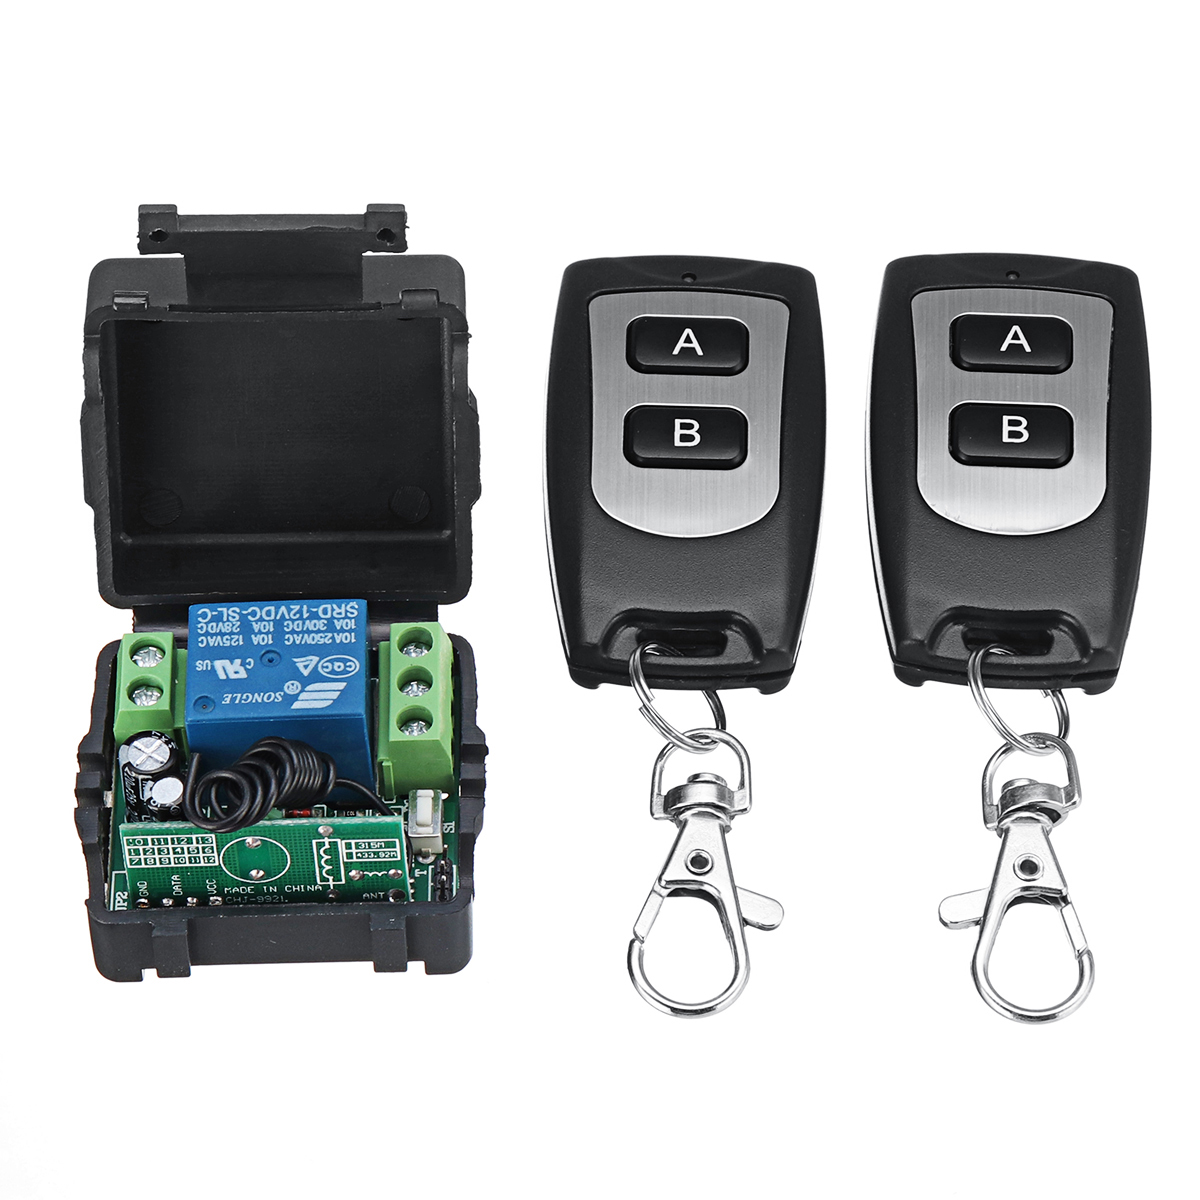 433mhz 12v Relay 1 2 4ch Wireless Rf Remote Control Switch Controlled Toy Car Circuit With Transceiver Module